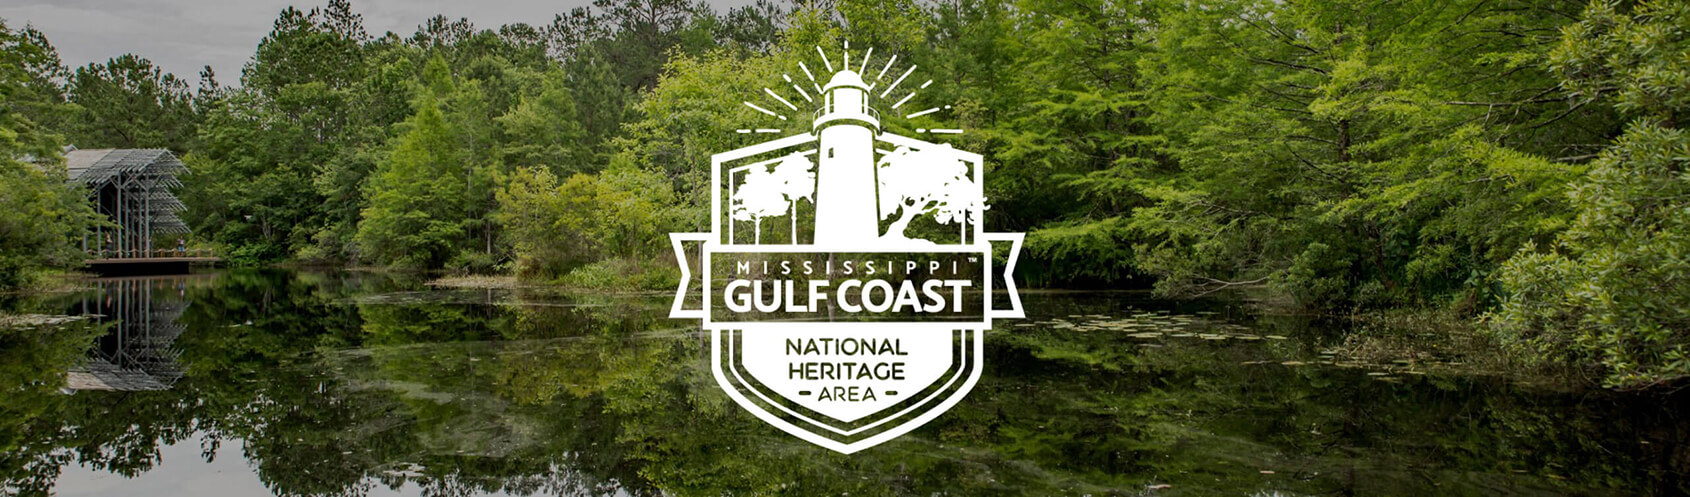 Extra Image mob Mississippi Gulf Coast <br>National Heritage Area